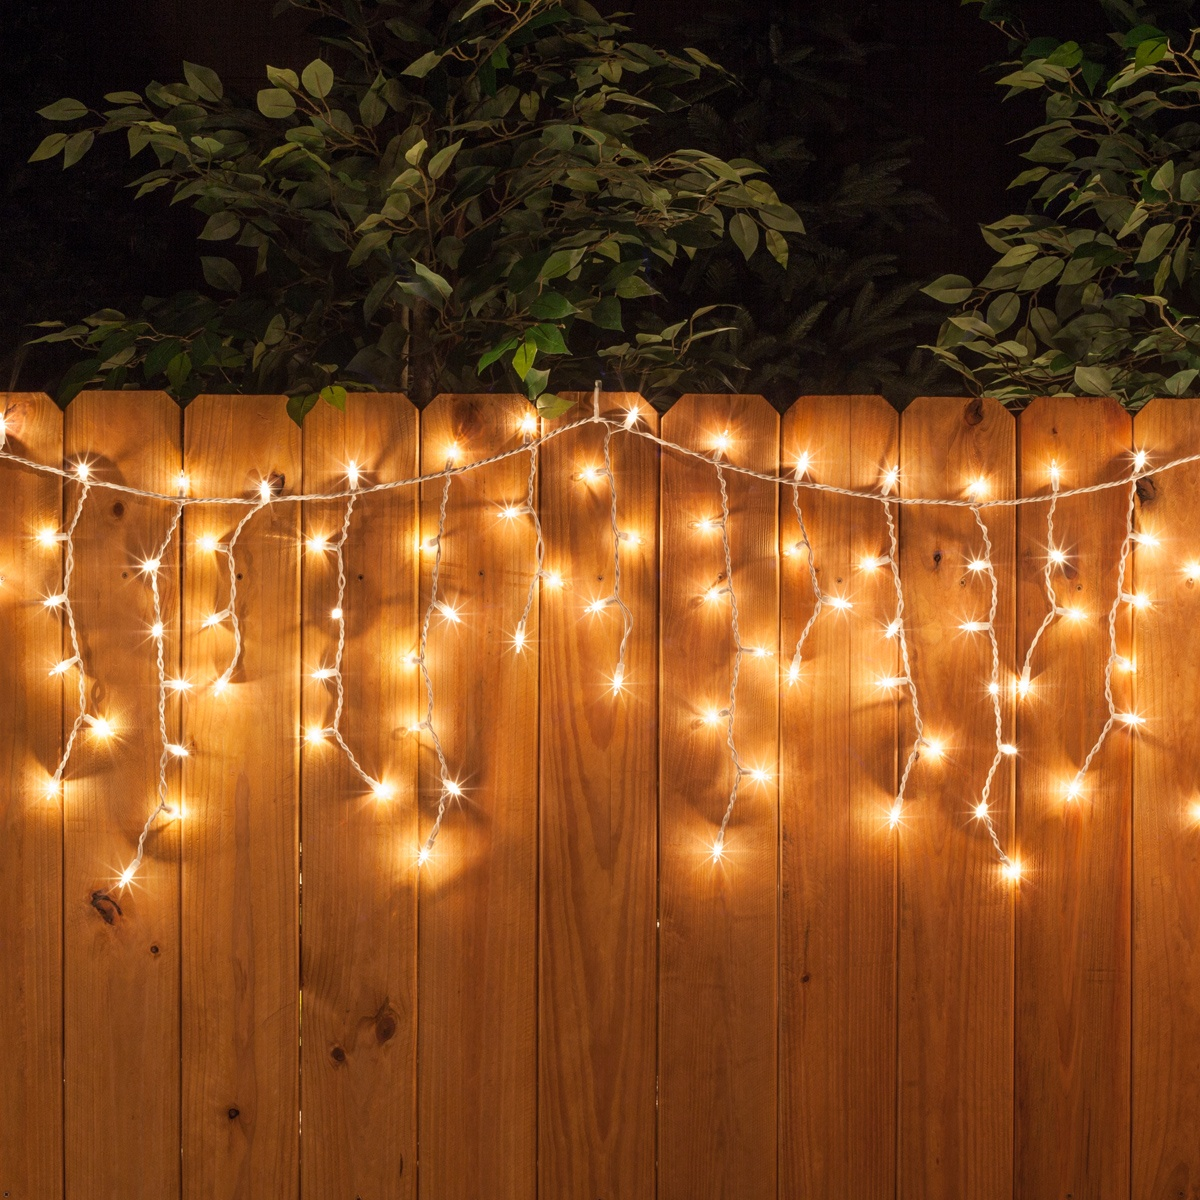 Clear-Mini-Icicle-Lights-White-Wire-Fence-7861 Backyard Ideas With Palm Trees on backyard ideas with dogs, backyard ideas with bamboo, small backyard with palm trees, backyard ideas with ducks, backyard ideas with fruit trees, backyard ideas with sand, backyard ideas pine trees, backyard ideas with cactus, backyard ideas with shells, backyard ideas with rocks, backyard ideas with mulch, backyard ideas with hammocks,